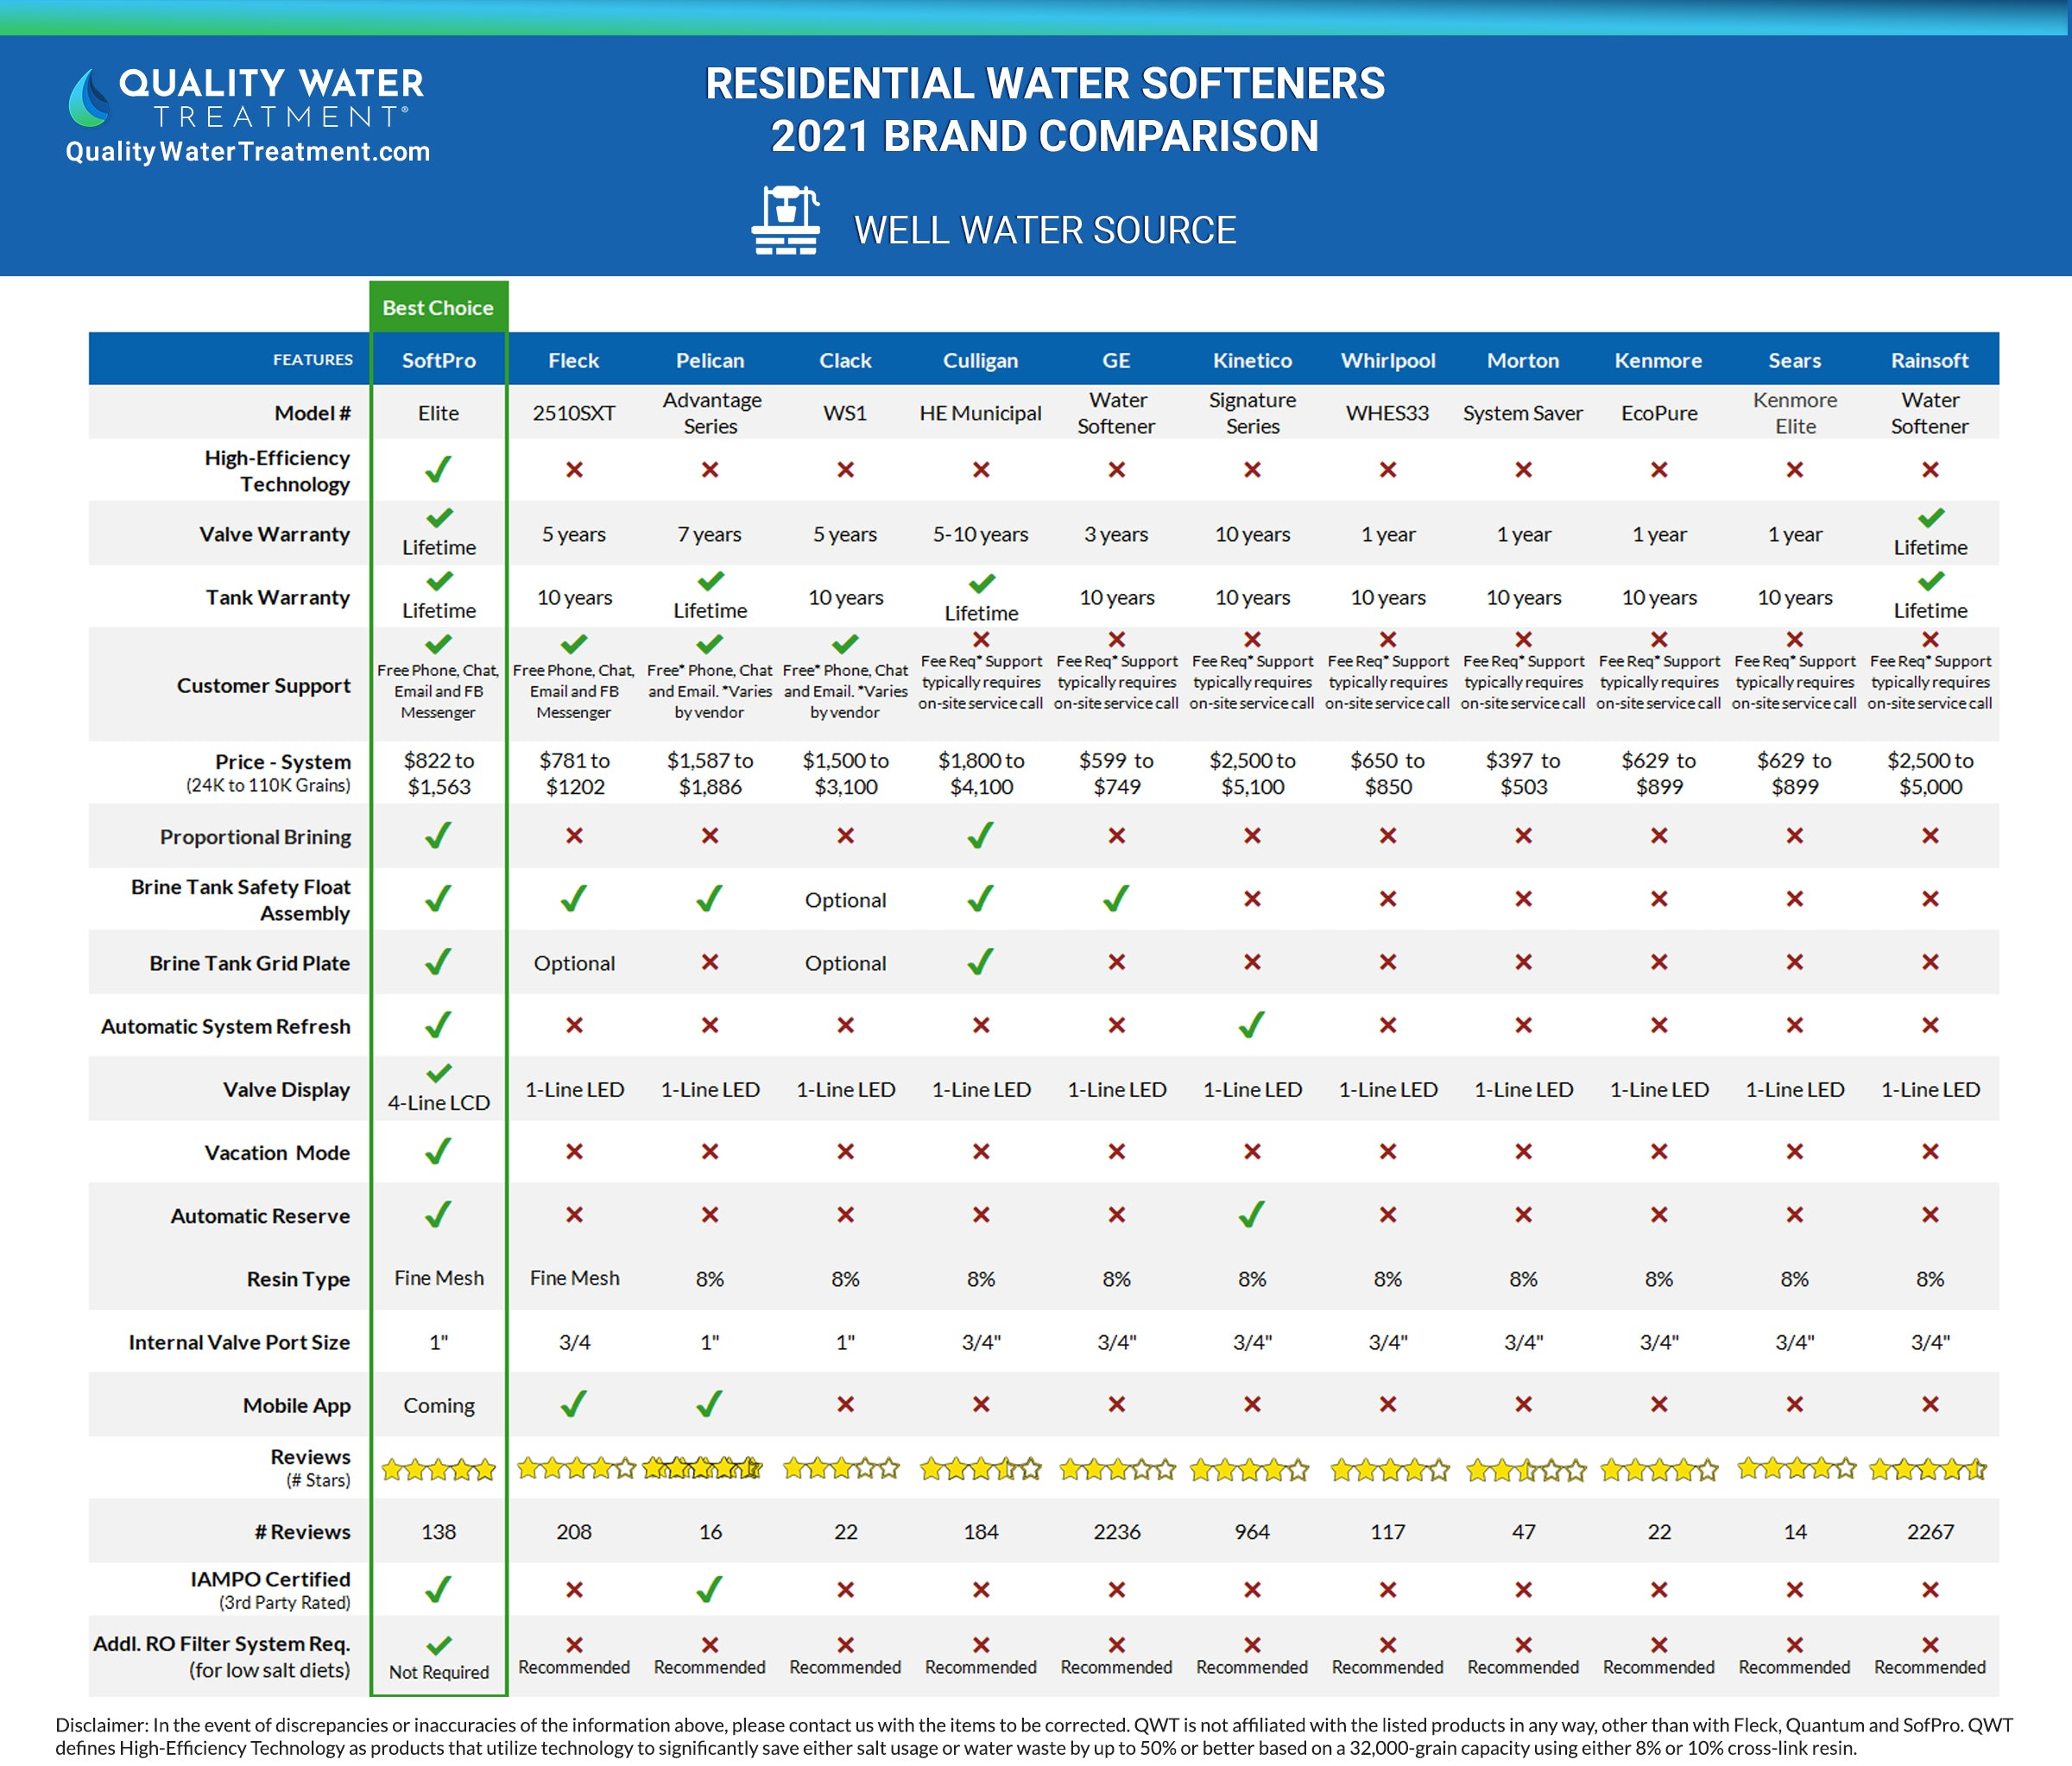 Water Softener Comparison Review 2021 - Well Water